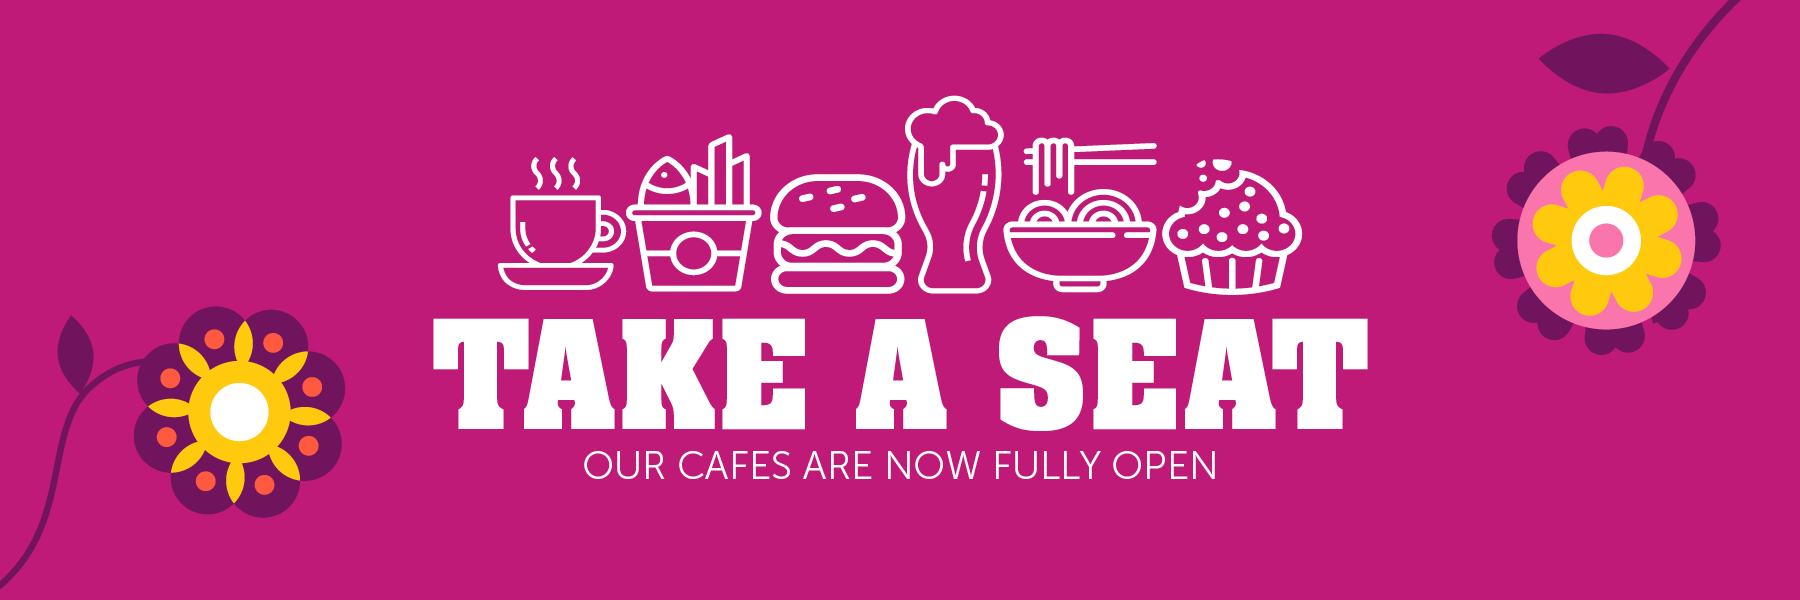 Cafes Now Fully Open